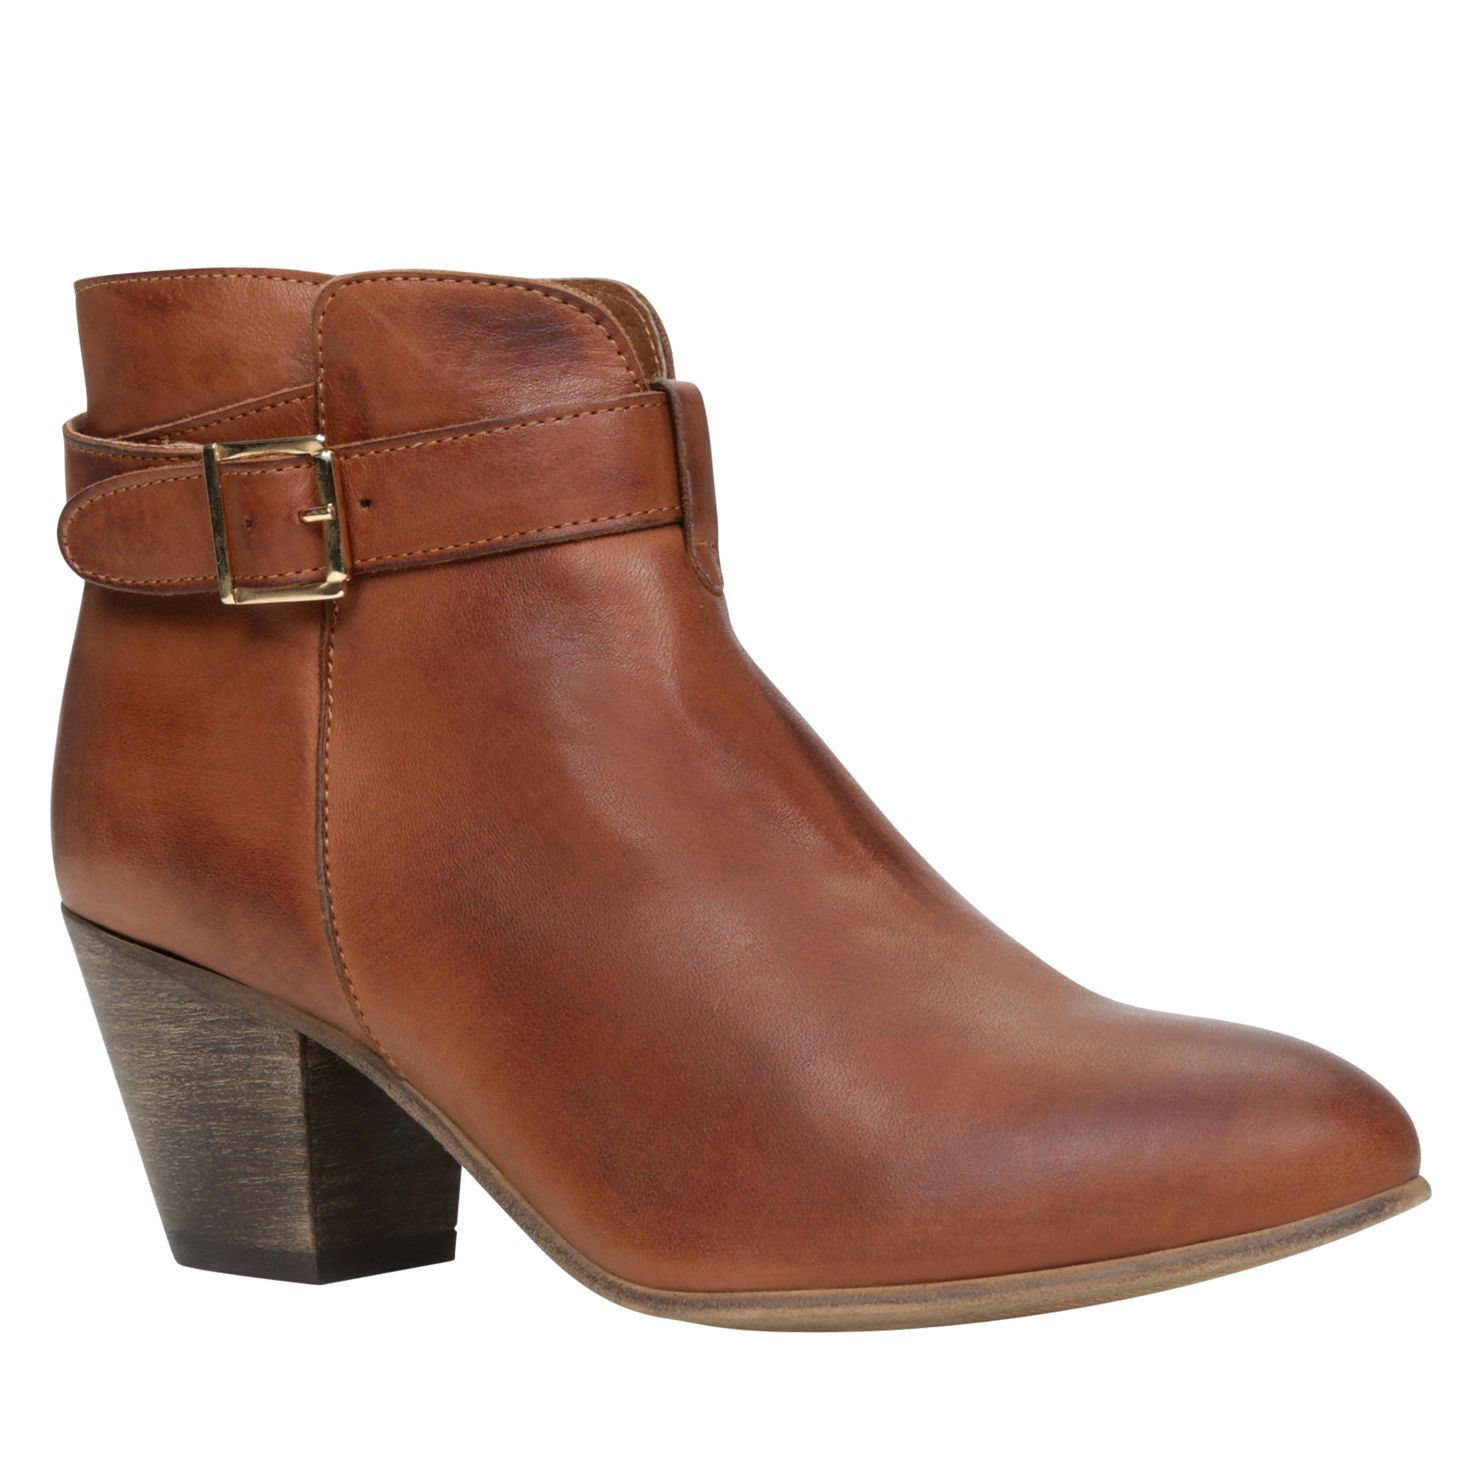 Incinante almond toe ankle boots